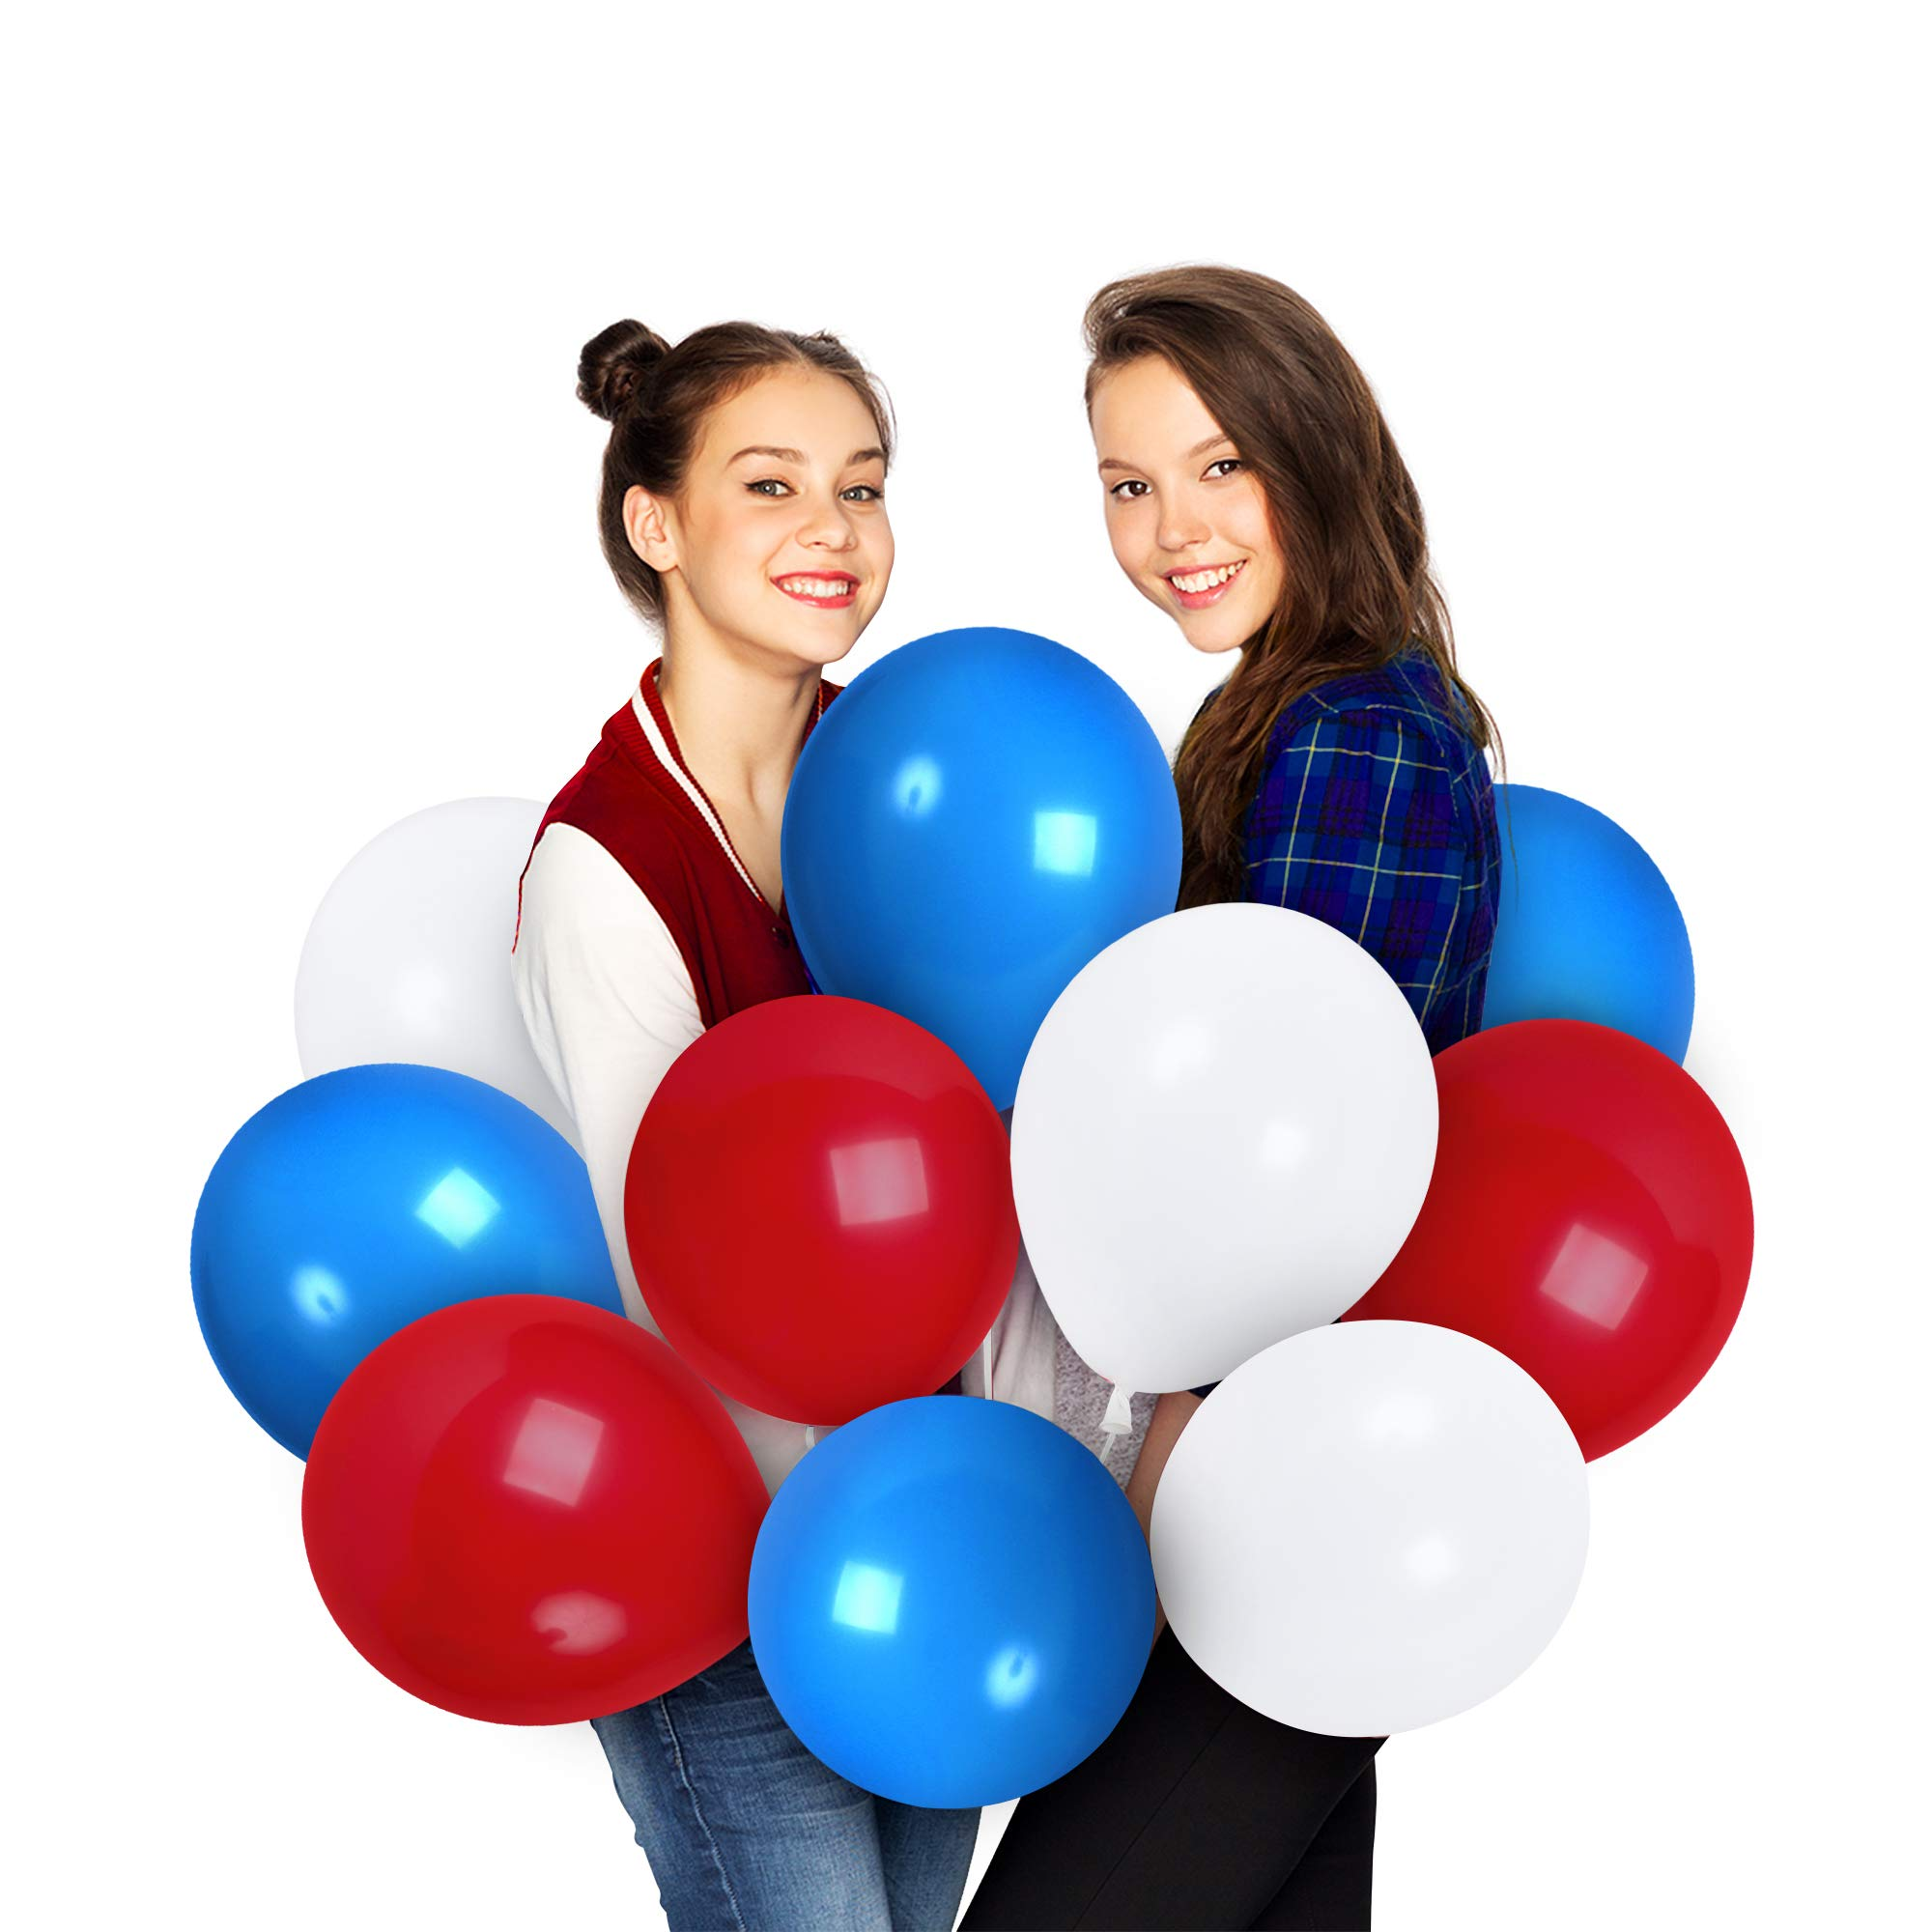 Treasures Gifted Red Balloon Dark Blue and White Balloons Garland 12 Inch Assorted Balloon Arch 4th of July Party Decorations for Superhero Birthday Baby Shower Party Baseball Party Decorations